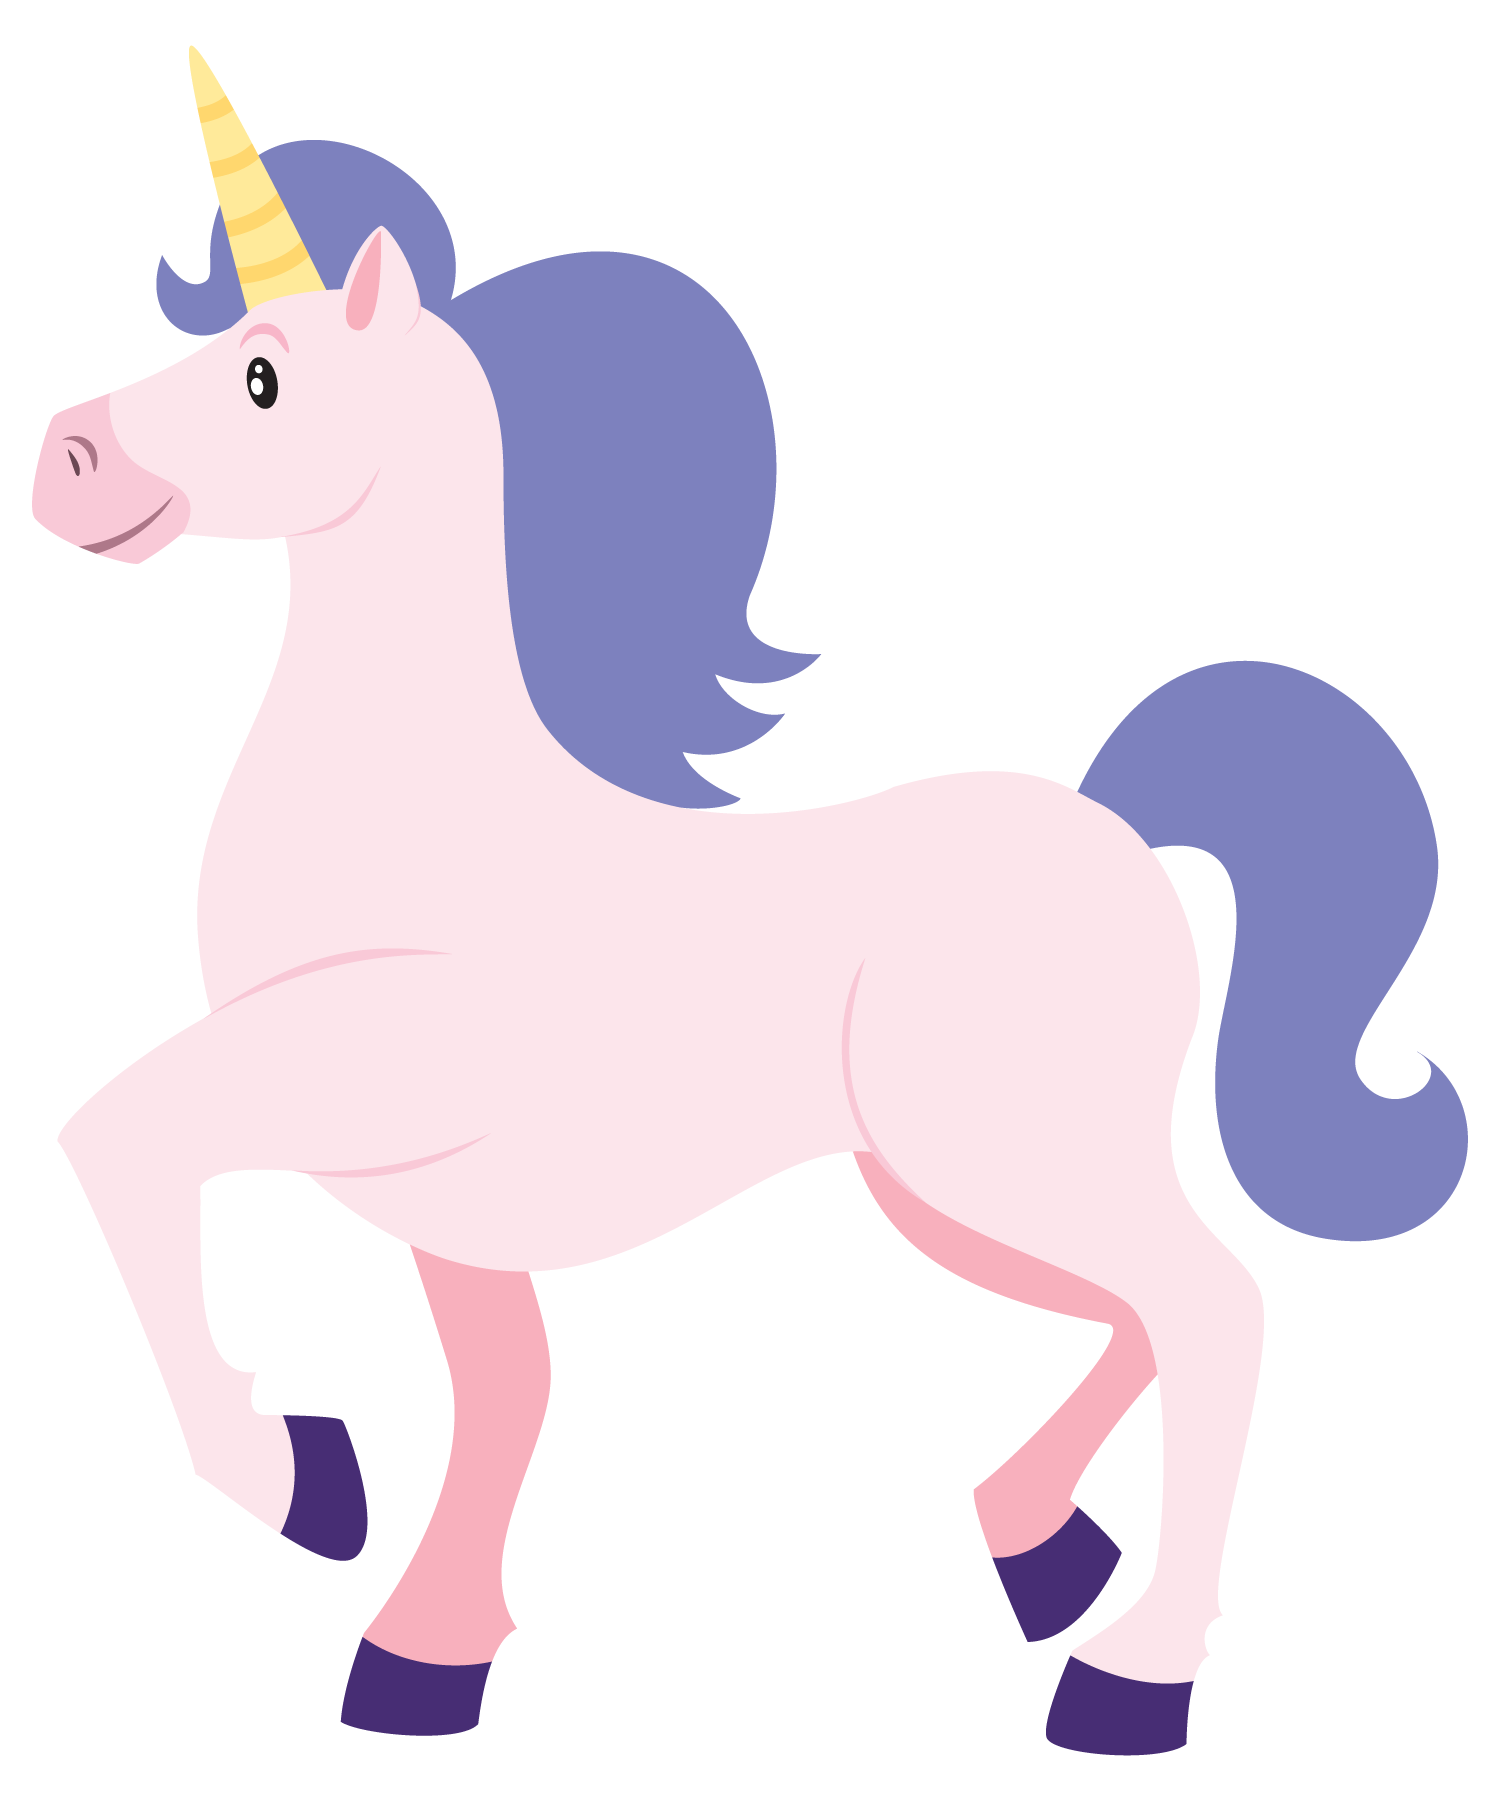 Unicorn crown clipart vector free Clip Art Unicorn This cute cartoon unicorn clip | Unicorns and ... vector free